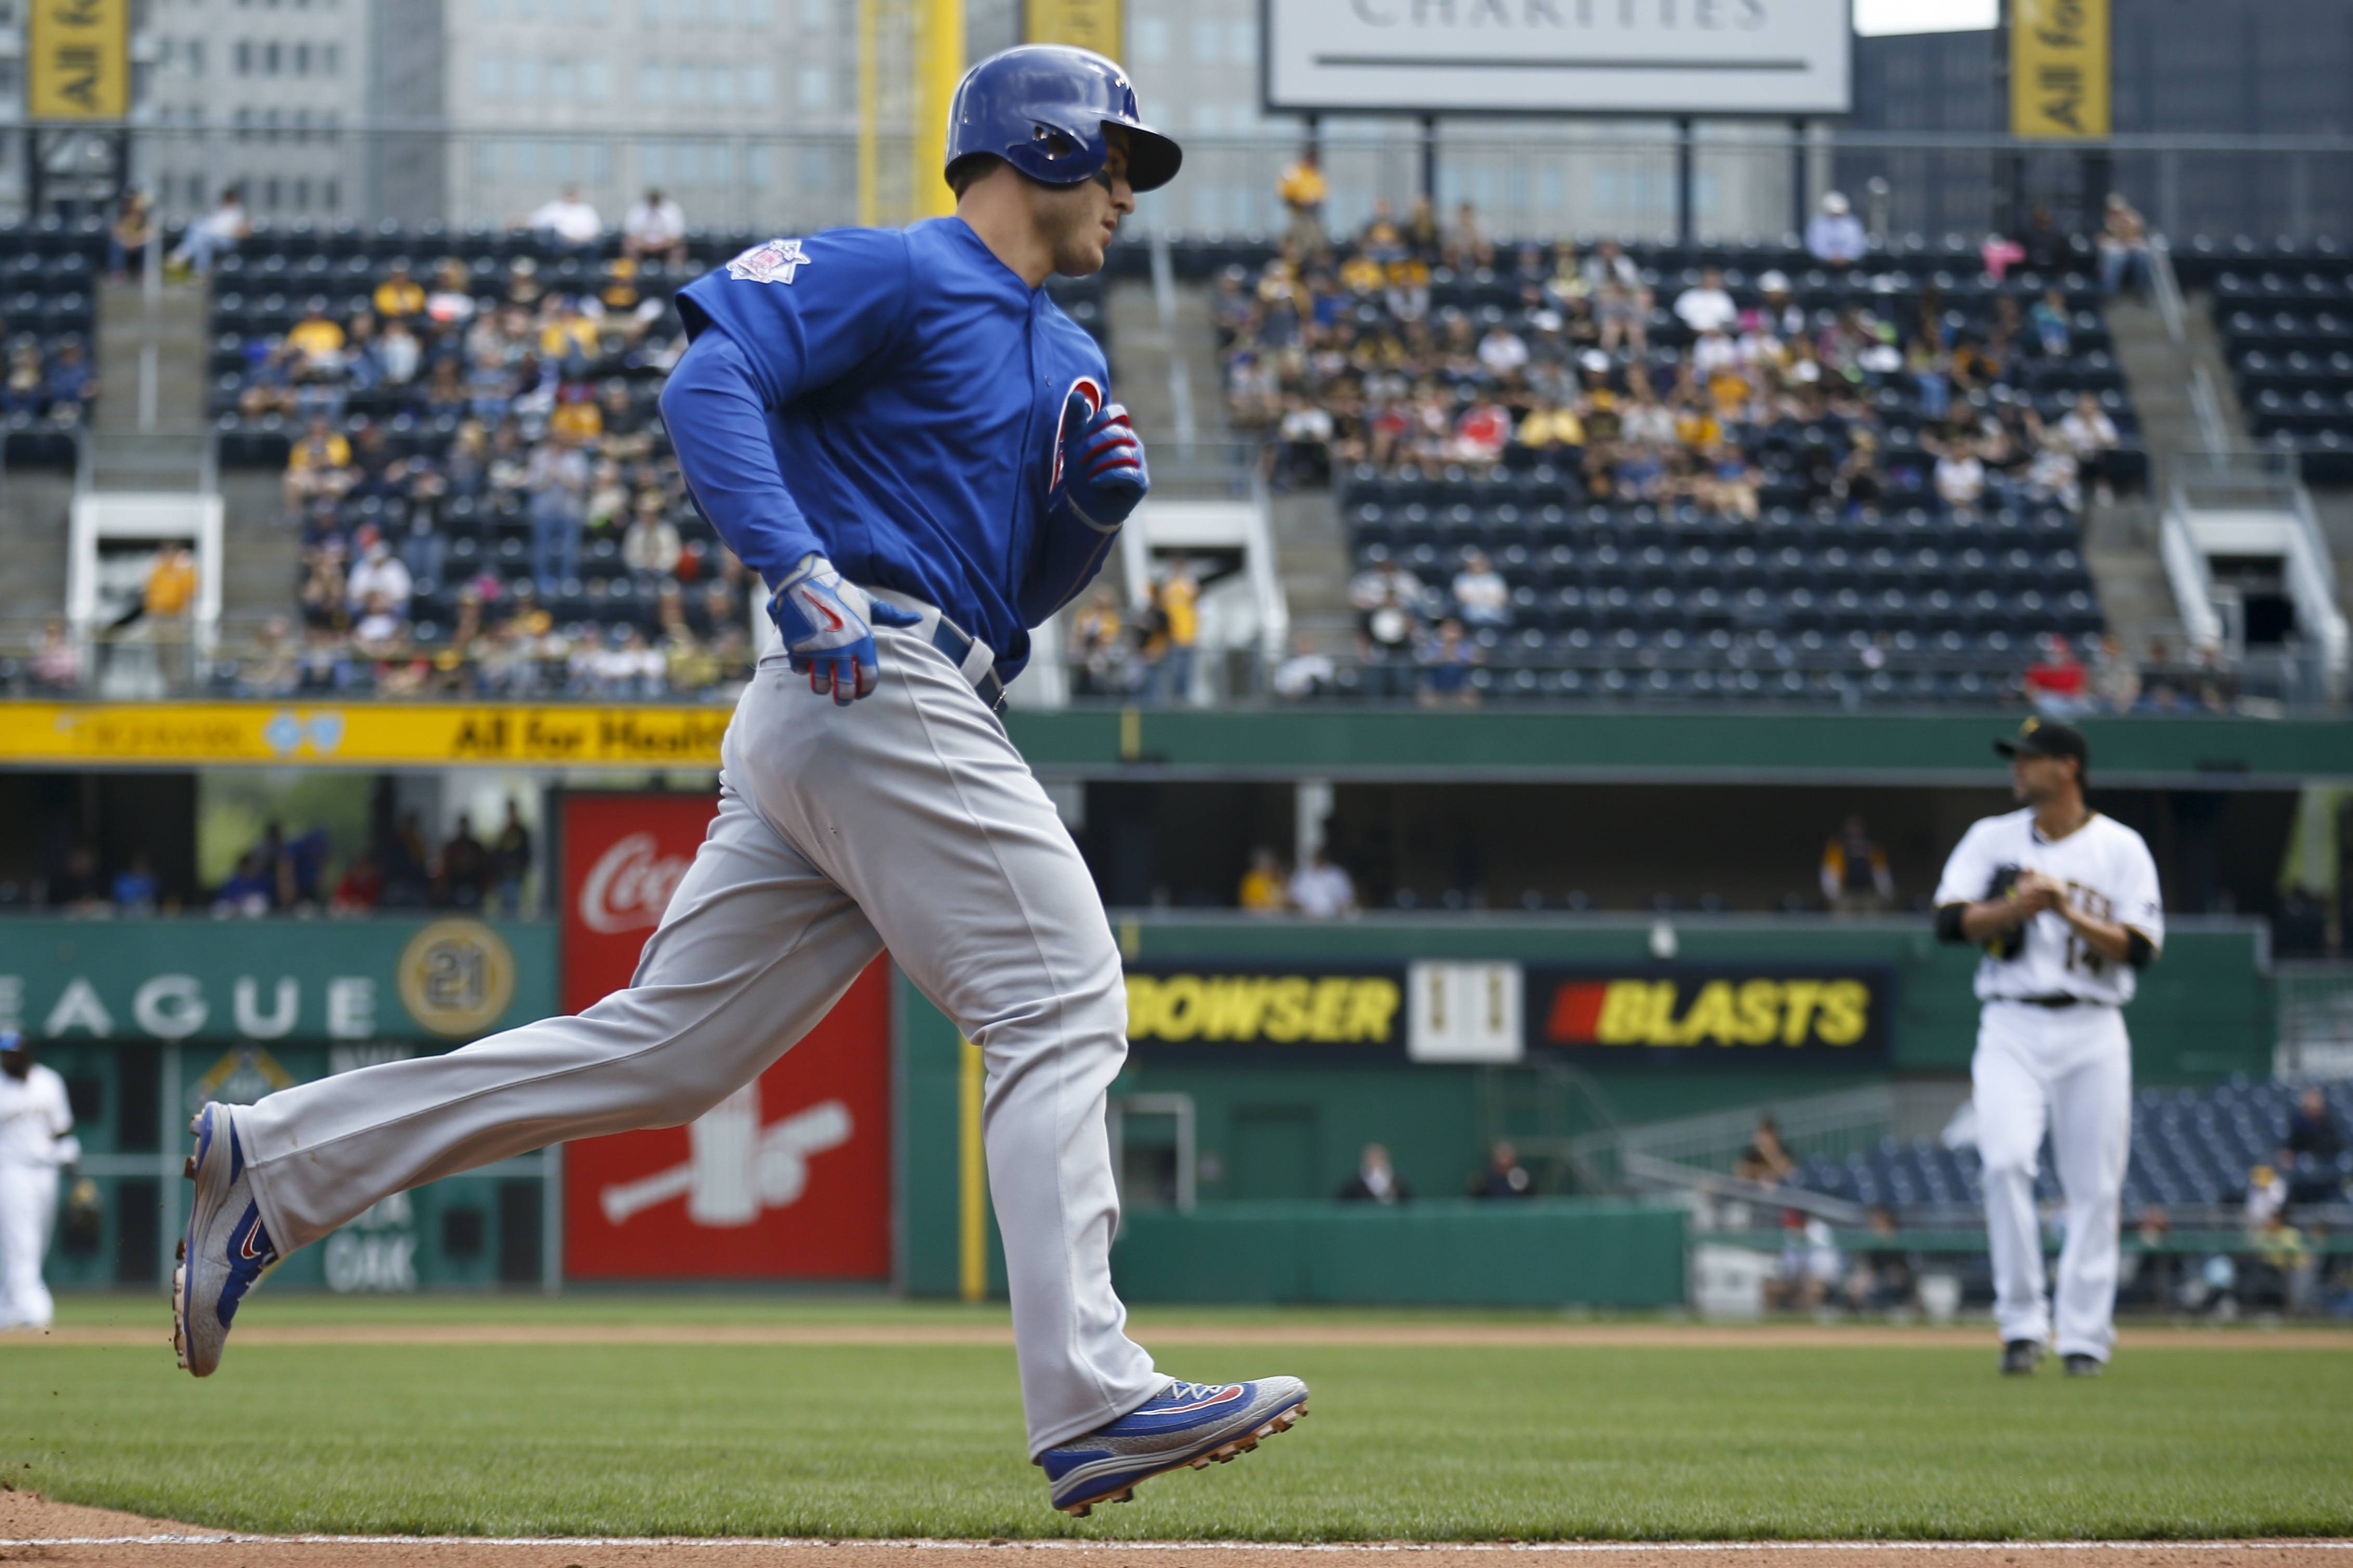 Chicago Cubs first baseman Anthony Rizzo rounds third in front of Pittsburgh Pirates relief pitcher Ryan Vogelsong after hitting a solohome run off him in the seventh inning Wednesday in Pittsburgh.